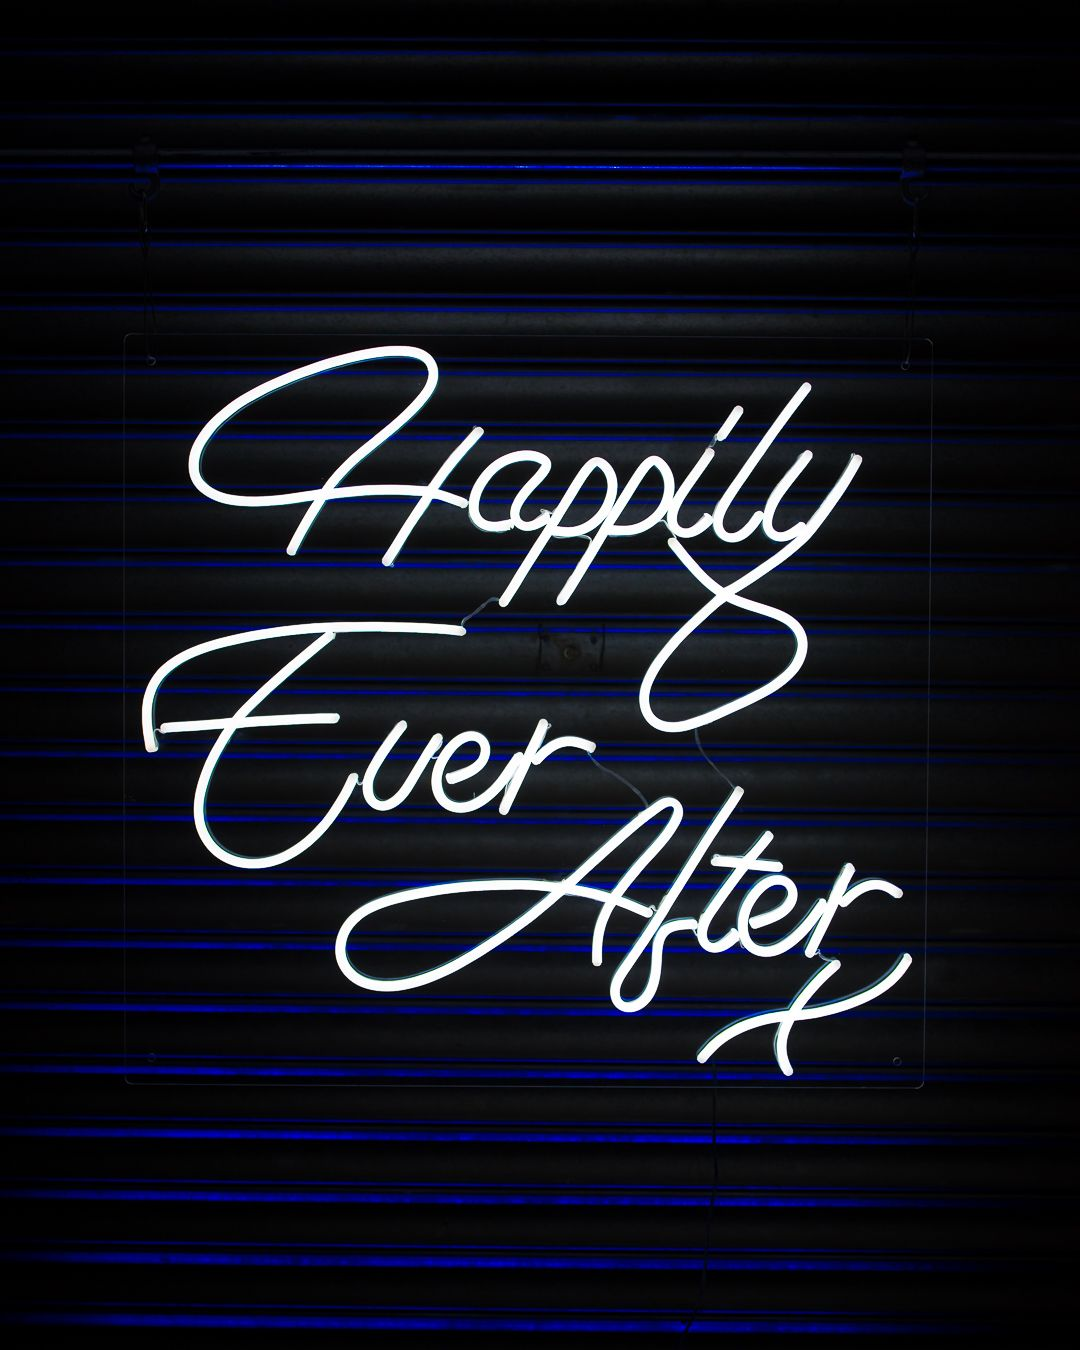 Happily Ever After Neon Sign Hire (With images) Neon